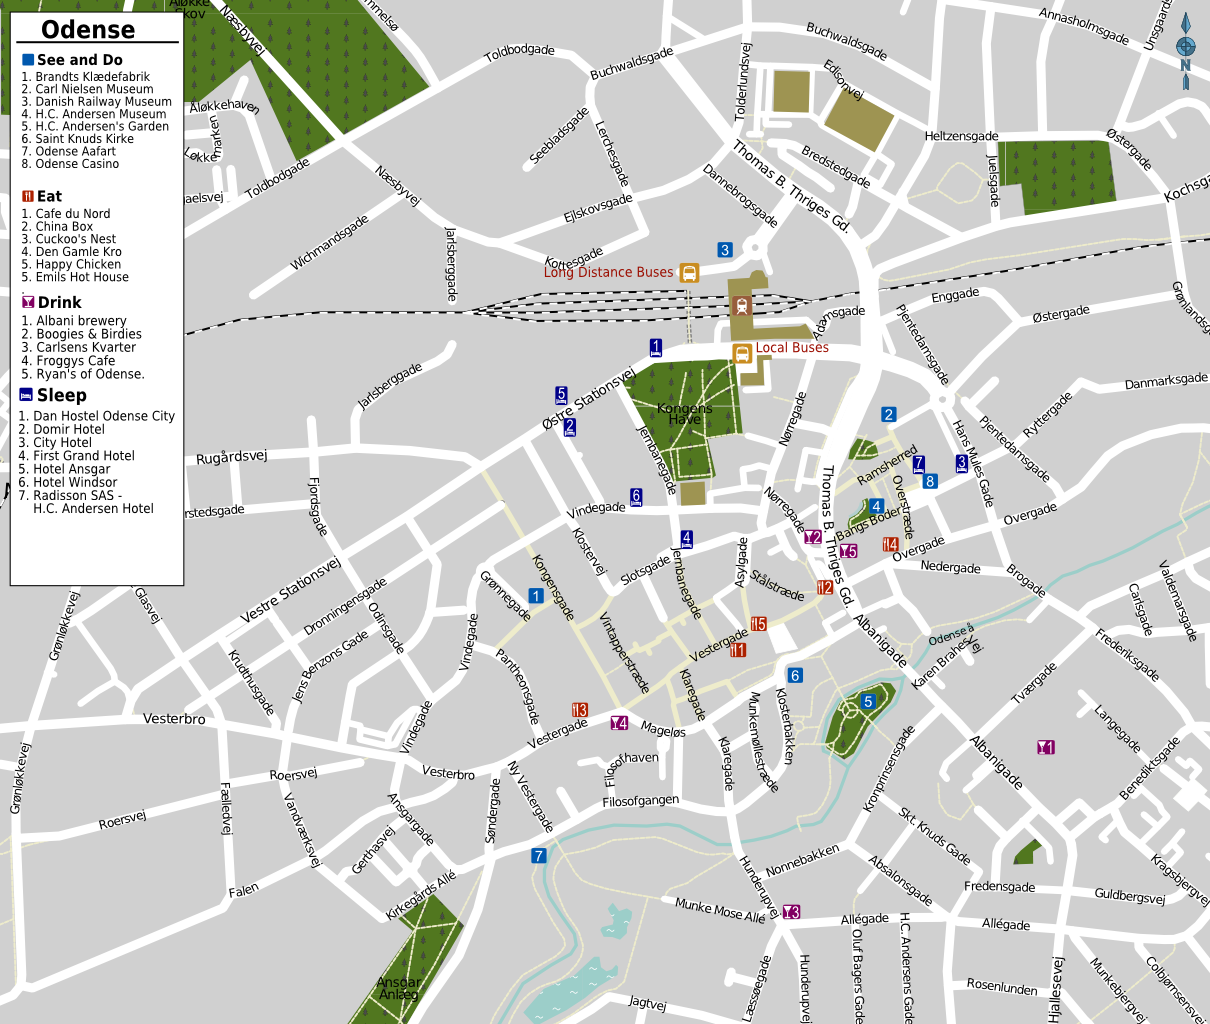 Odense Tourist Map Odense Denmark Mappery - Aarhus city map